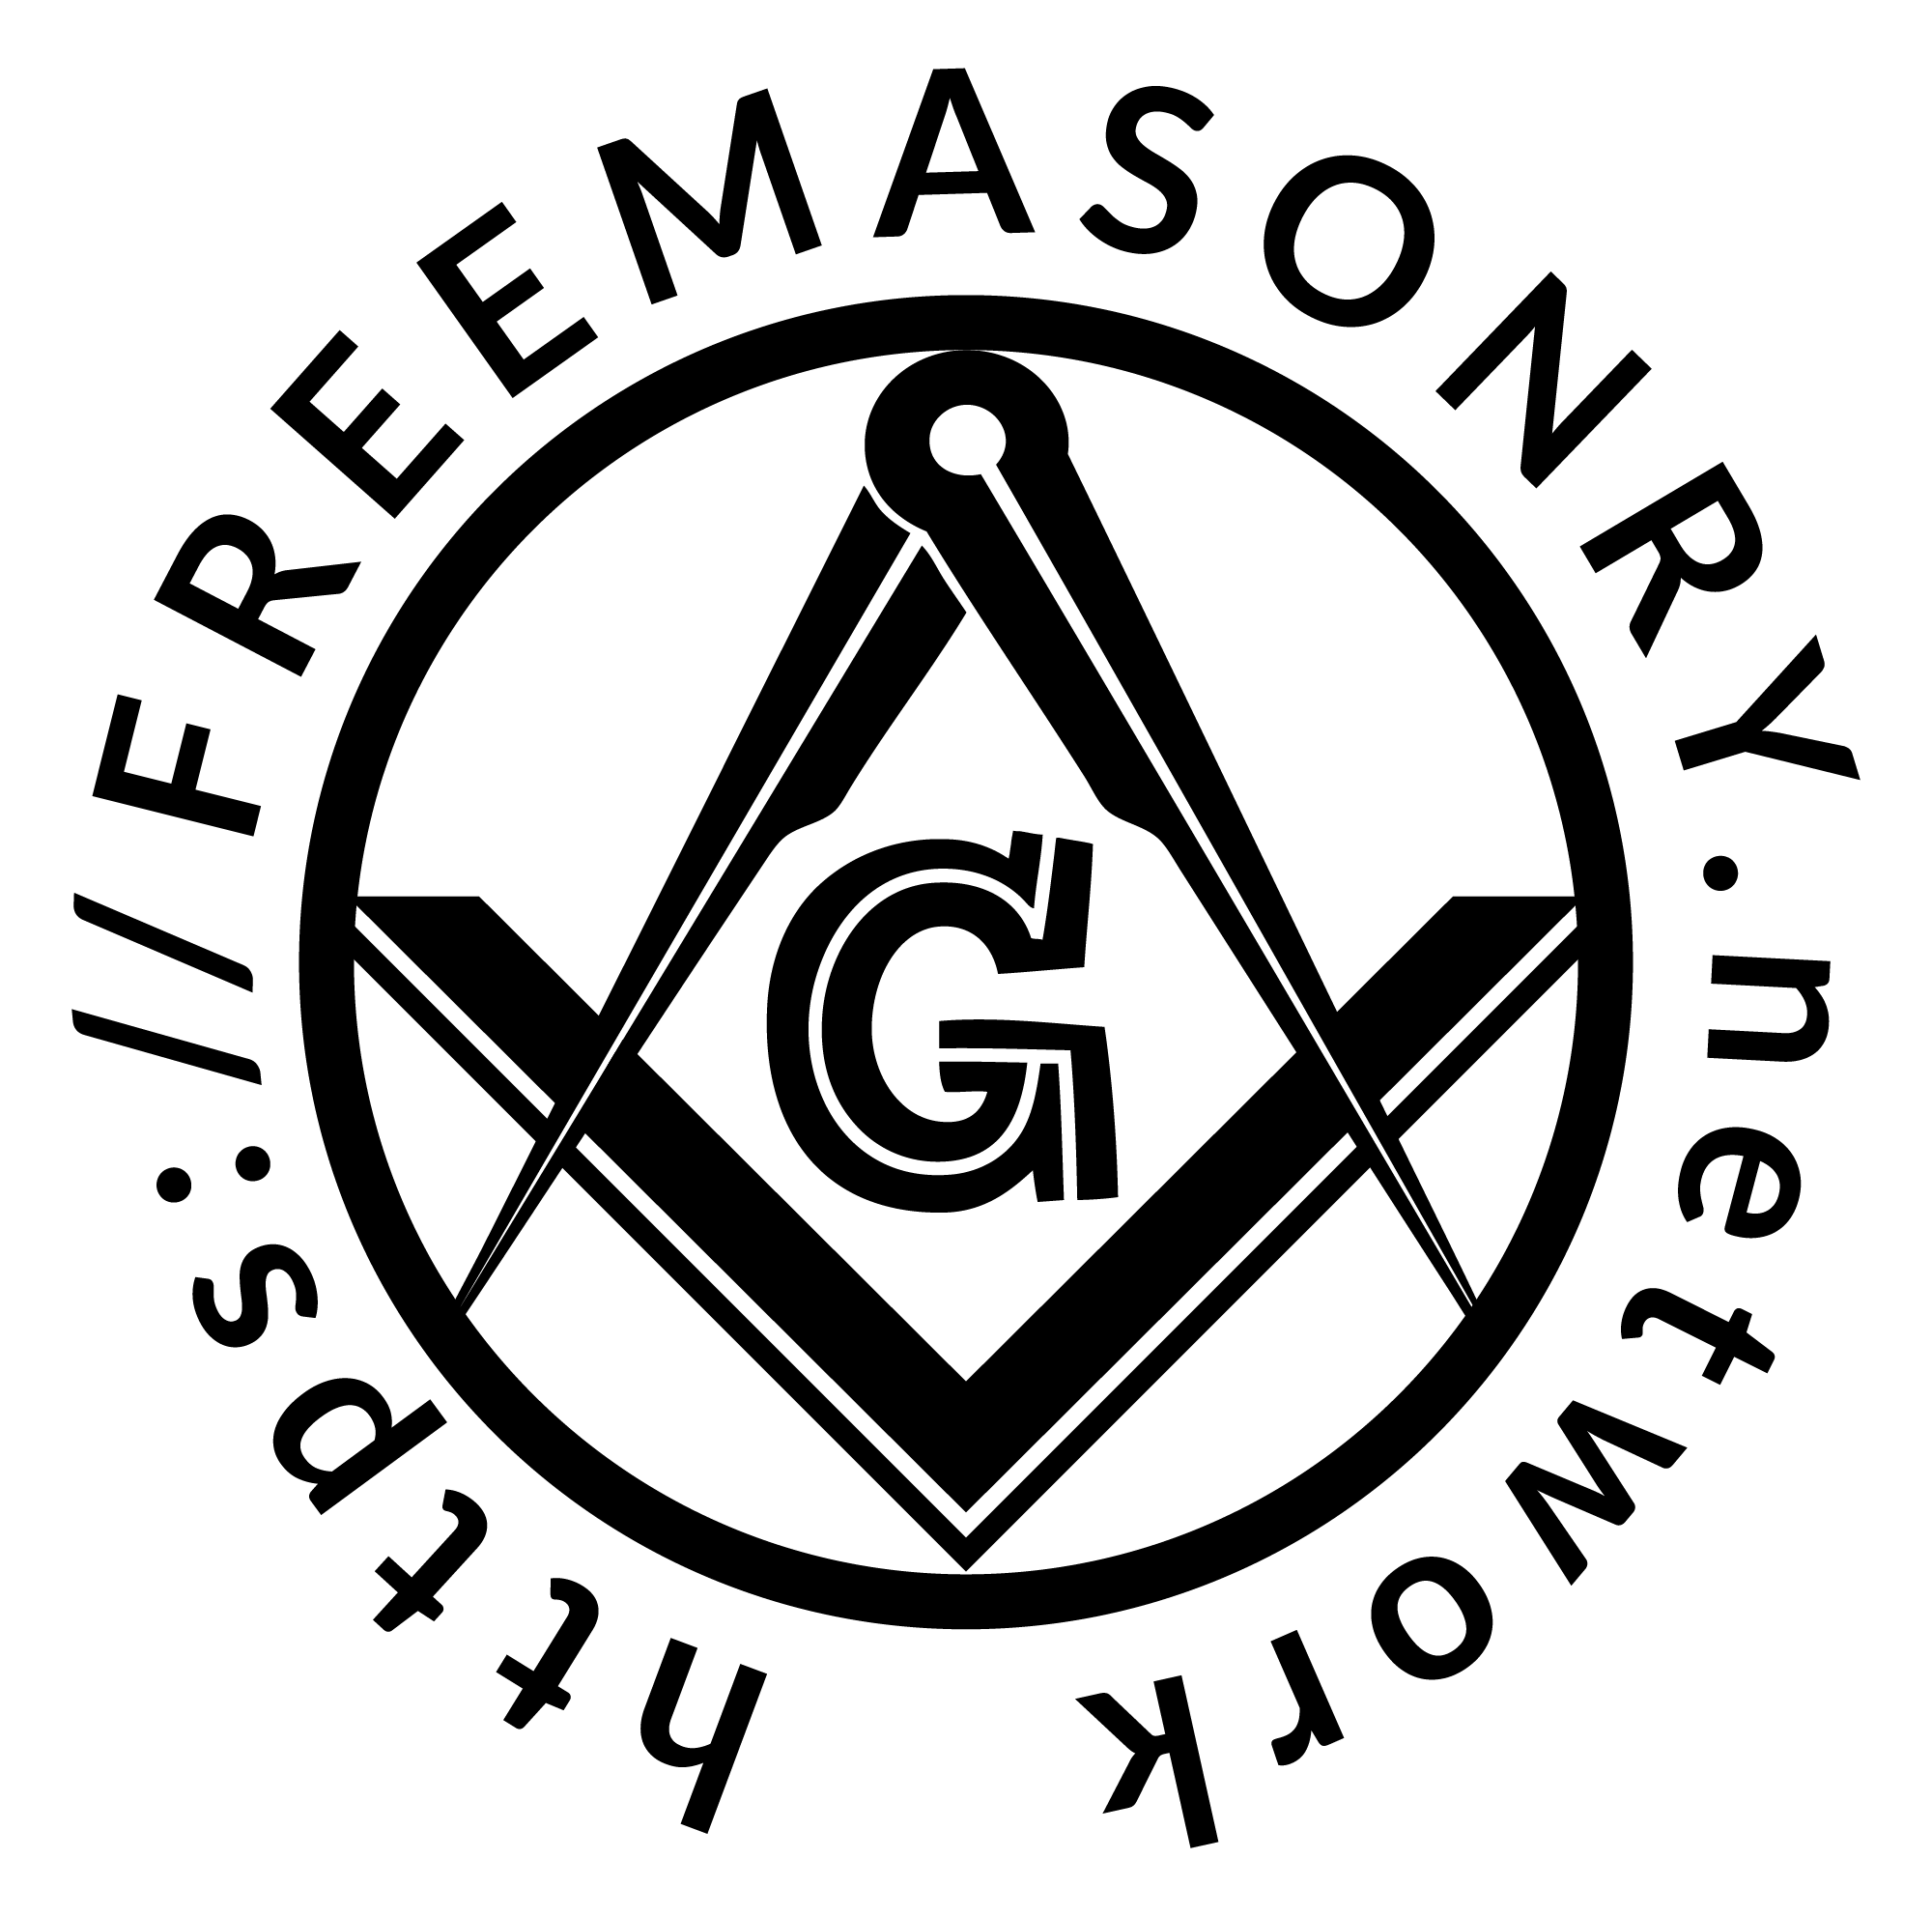 FREEMASONRY IN OREGON